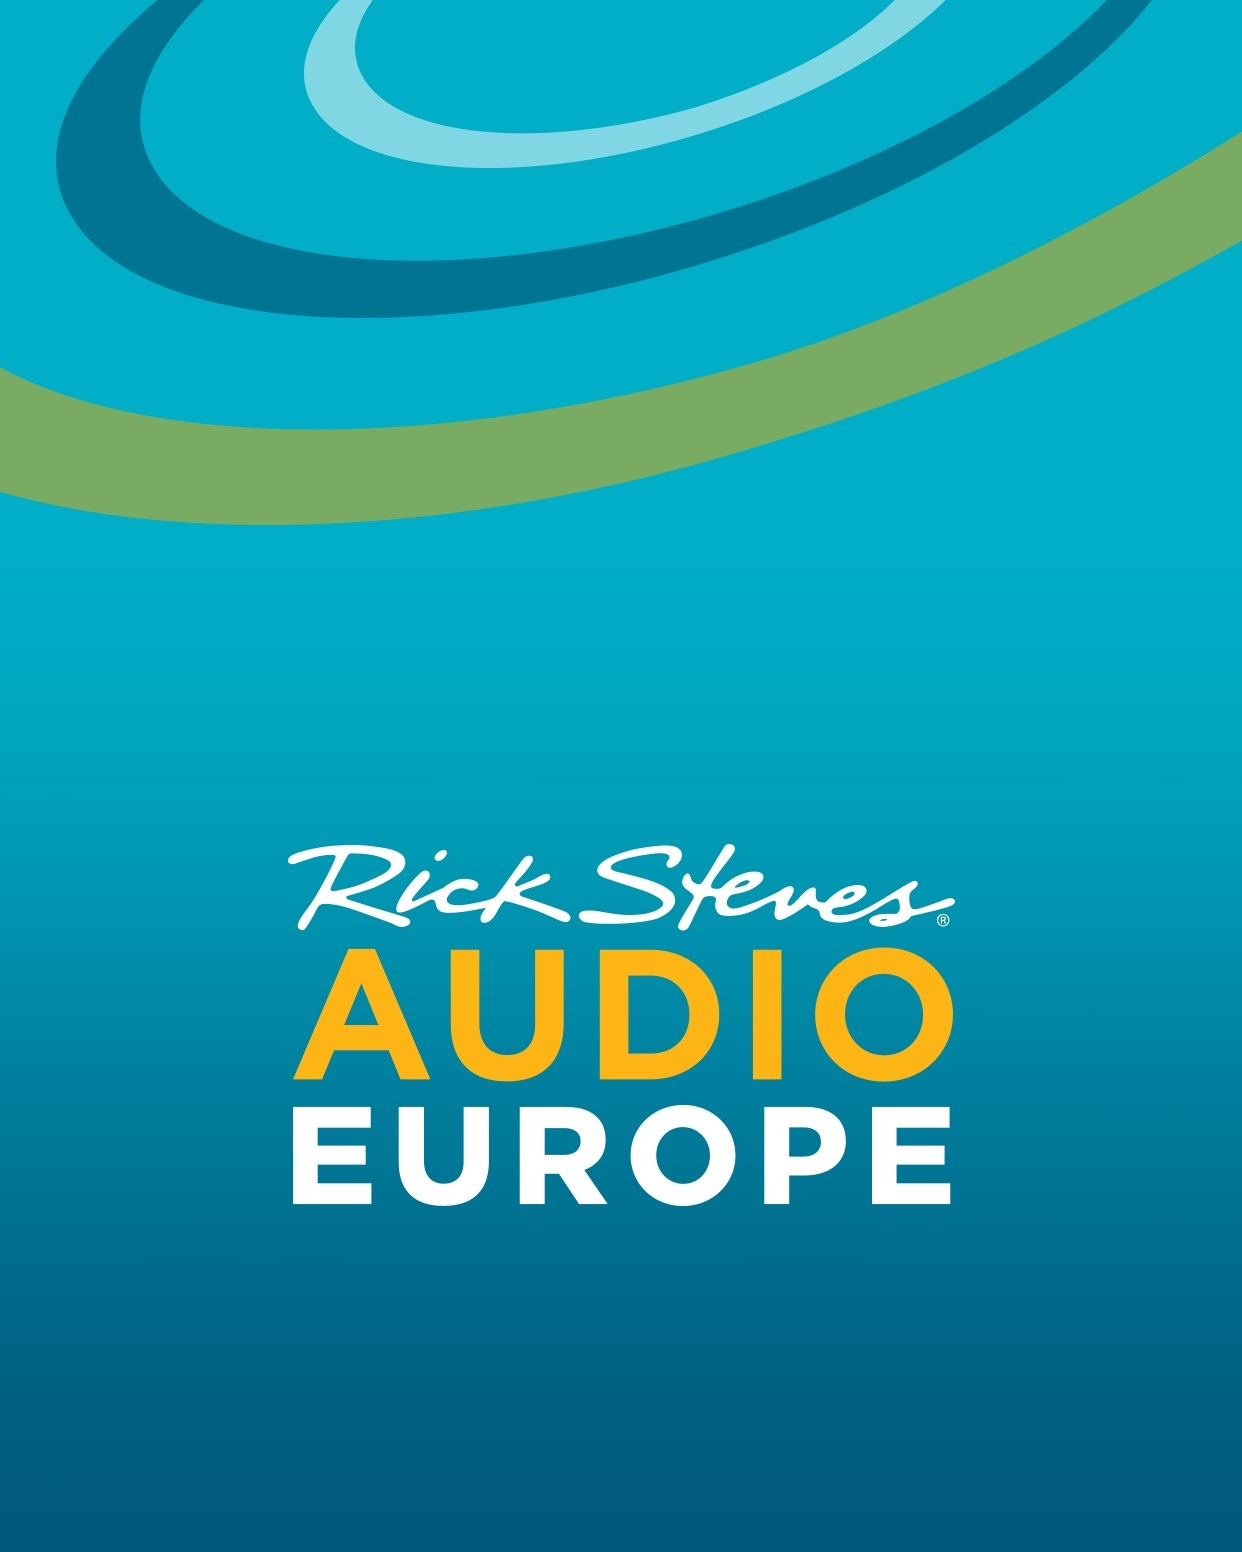 Rick Steve's Audio Europe: Downloadable Audio Tours. - This is great if you don't want to pay extra for a tour guide or headphones.